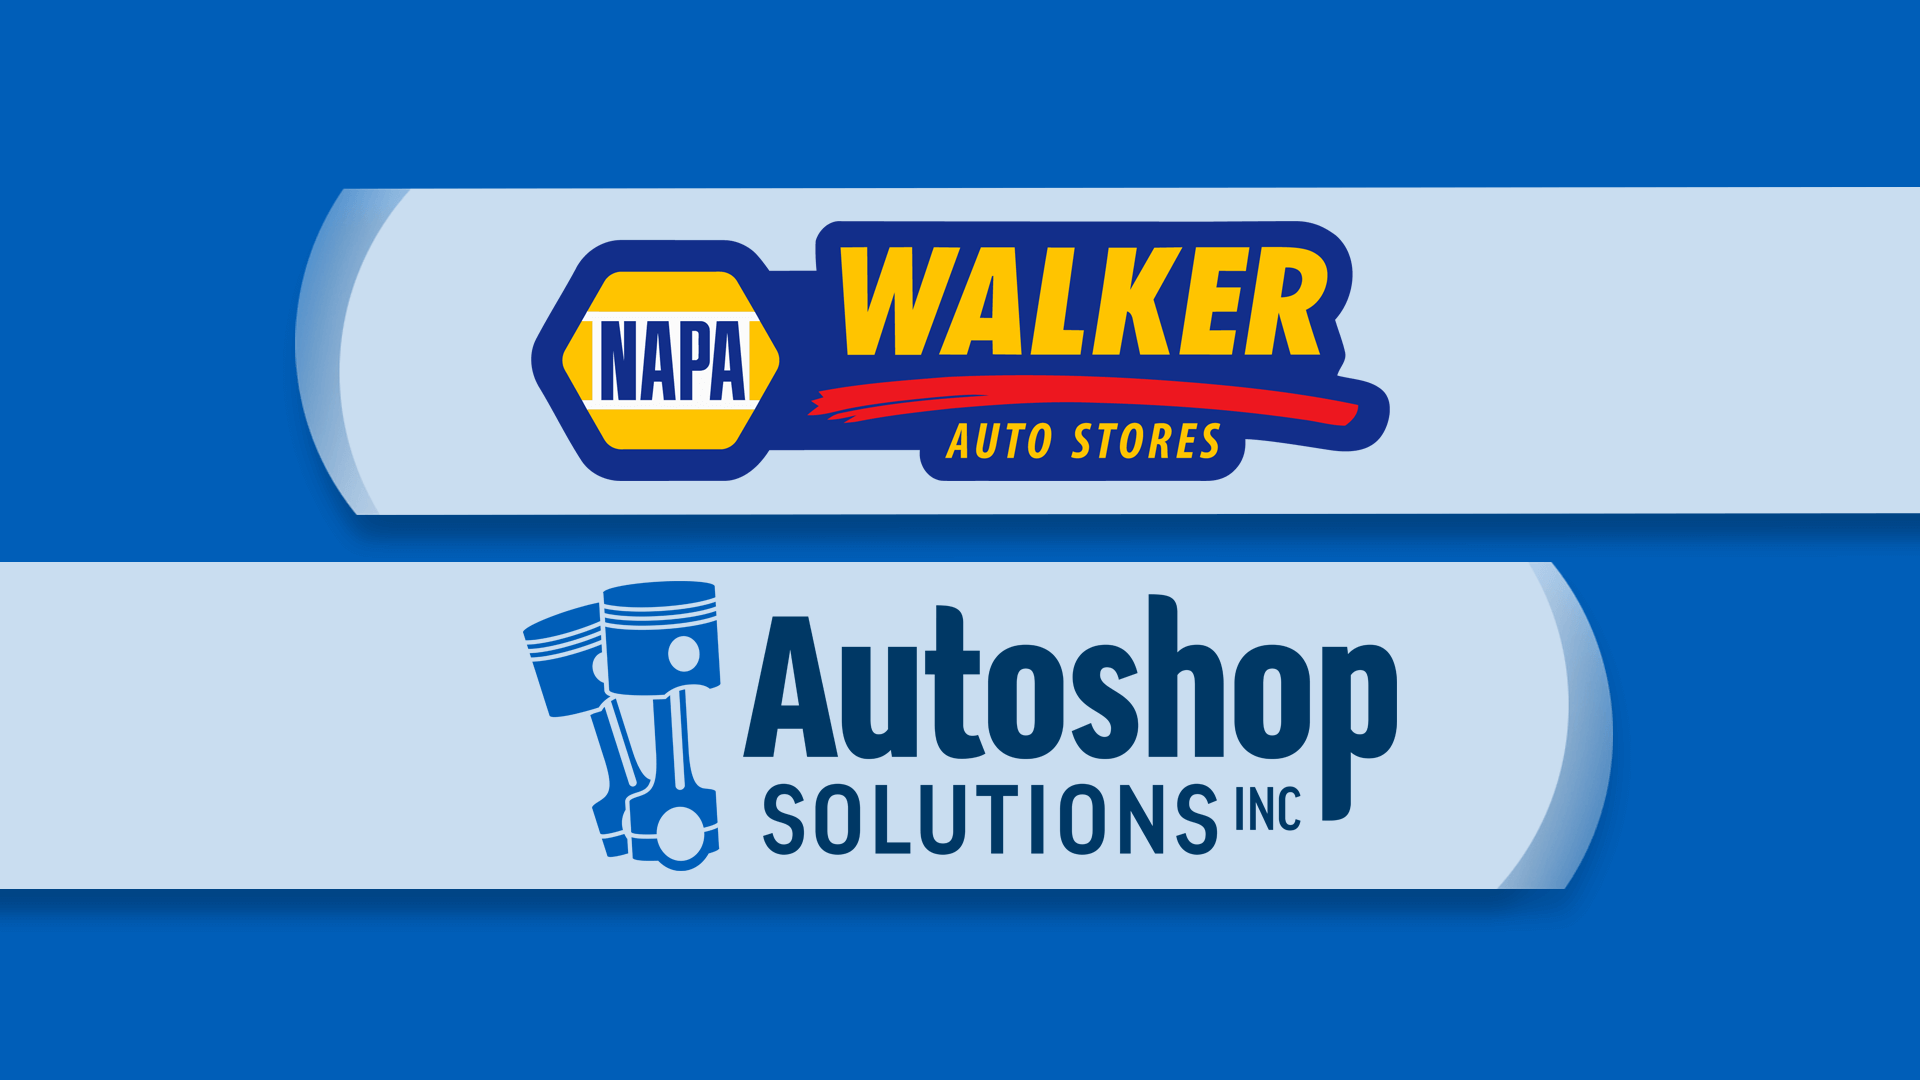 Walker Auto Parts partnership with Autoshop Solutions